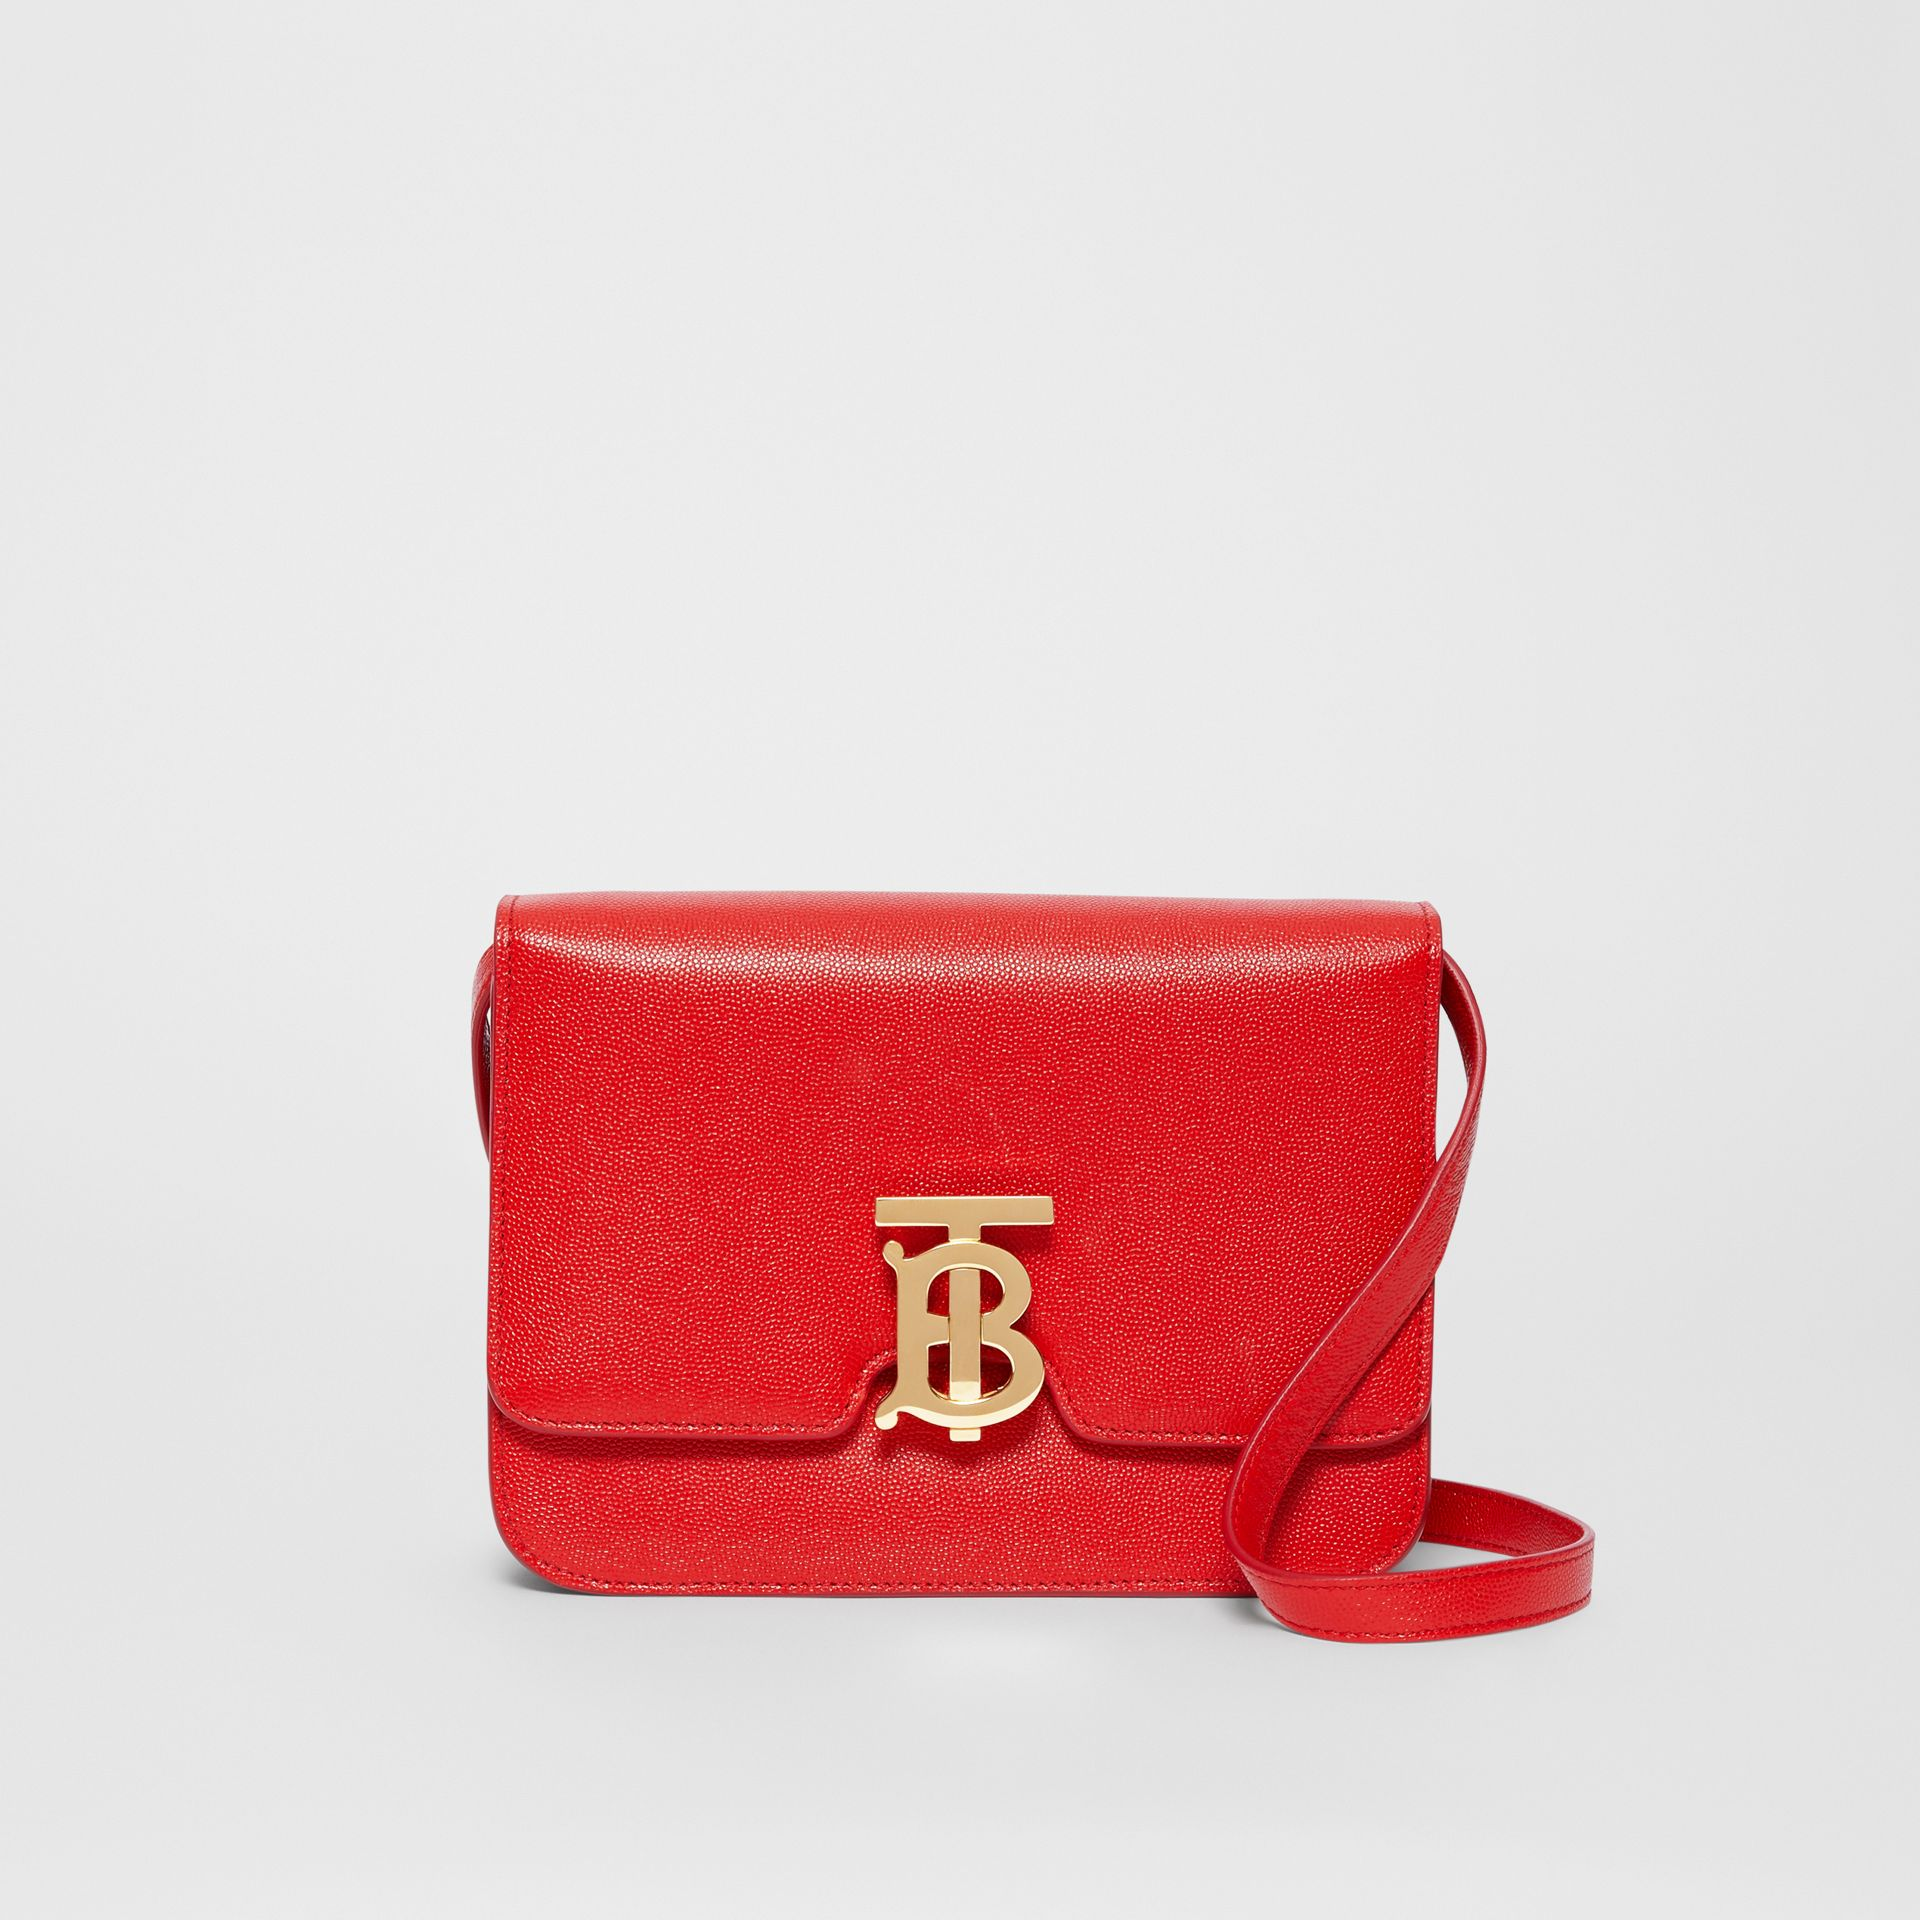 Small Grainy Leather TB Bag in Bright Red - Women | Burberry United Kingdom - gallery image 0